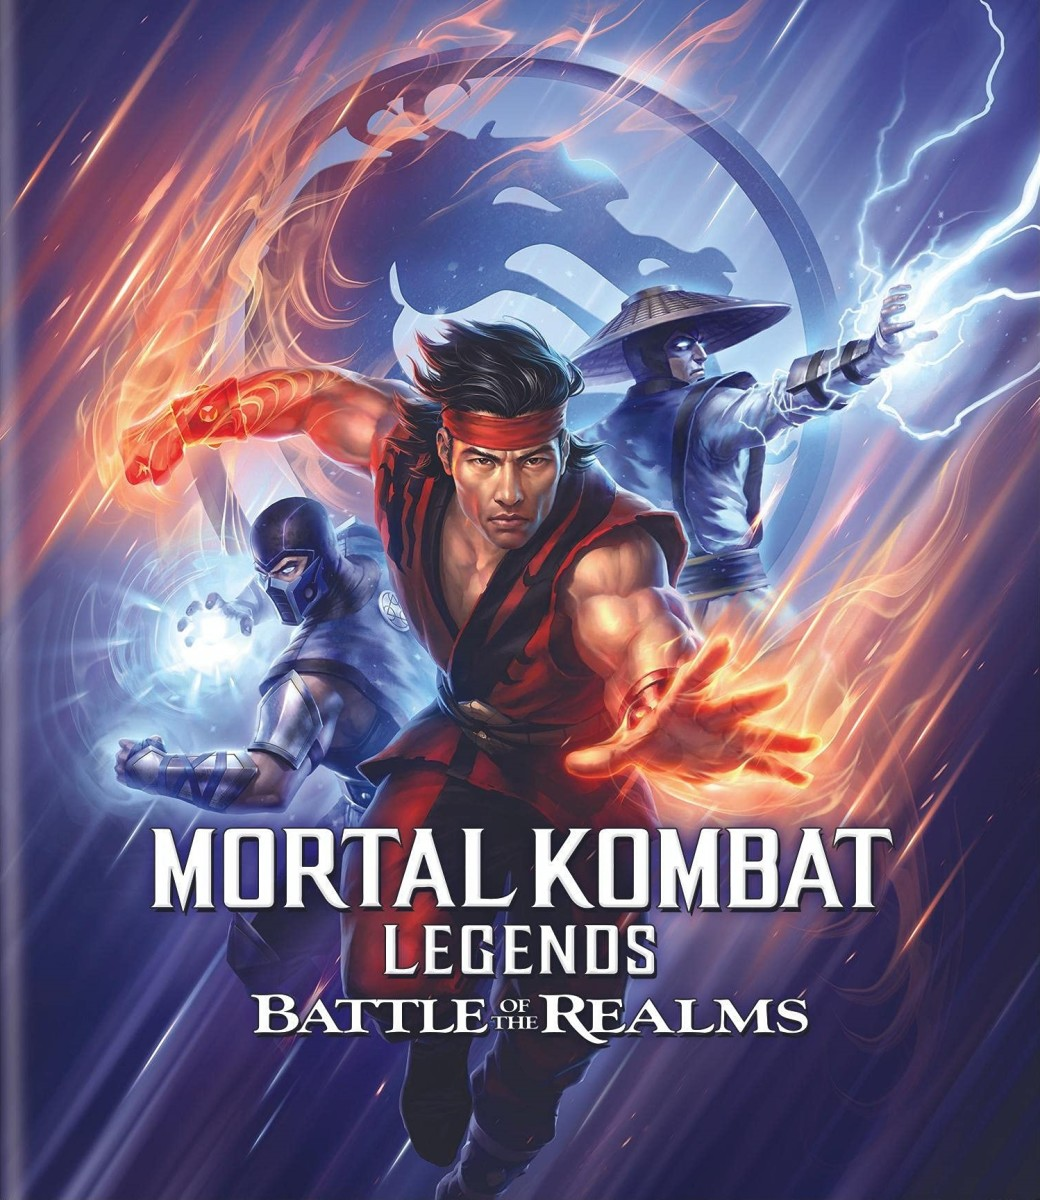 Cake's Takes on Mortal Kombat Legends: Battle of the Realms (Movie Review), (2021)